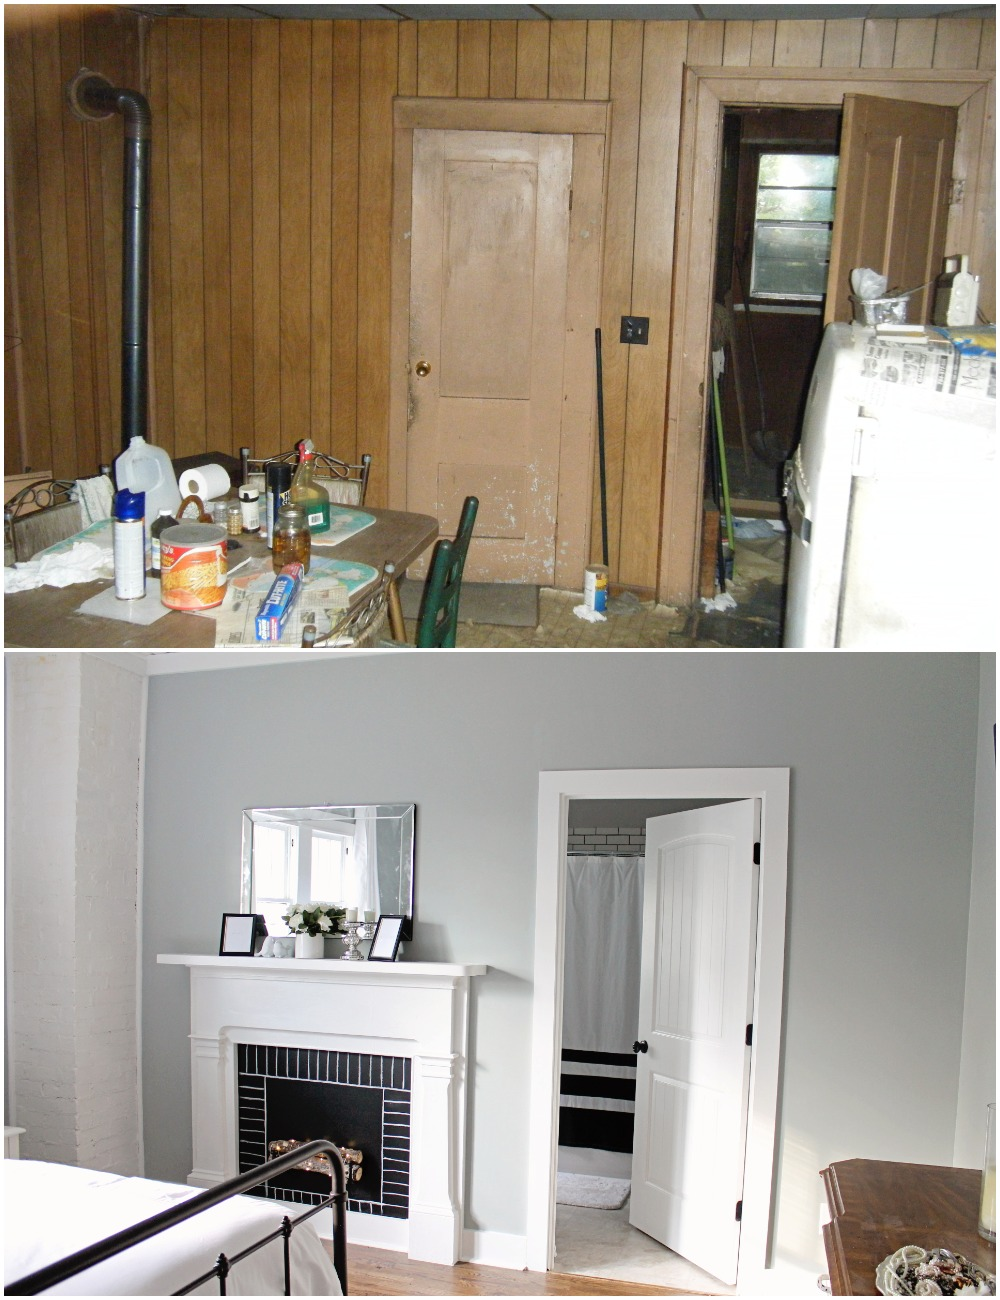 Elizabeth Burns Design  Budget-Friendly Fixer Upper Farmhouse Before and After House Flip - DIY Master Bedroom with Faux Fireplace, Chimney, and Bed Under Windows - Sherwin Williams Magnetic Gray (2).jpg